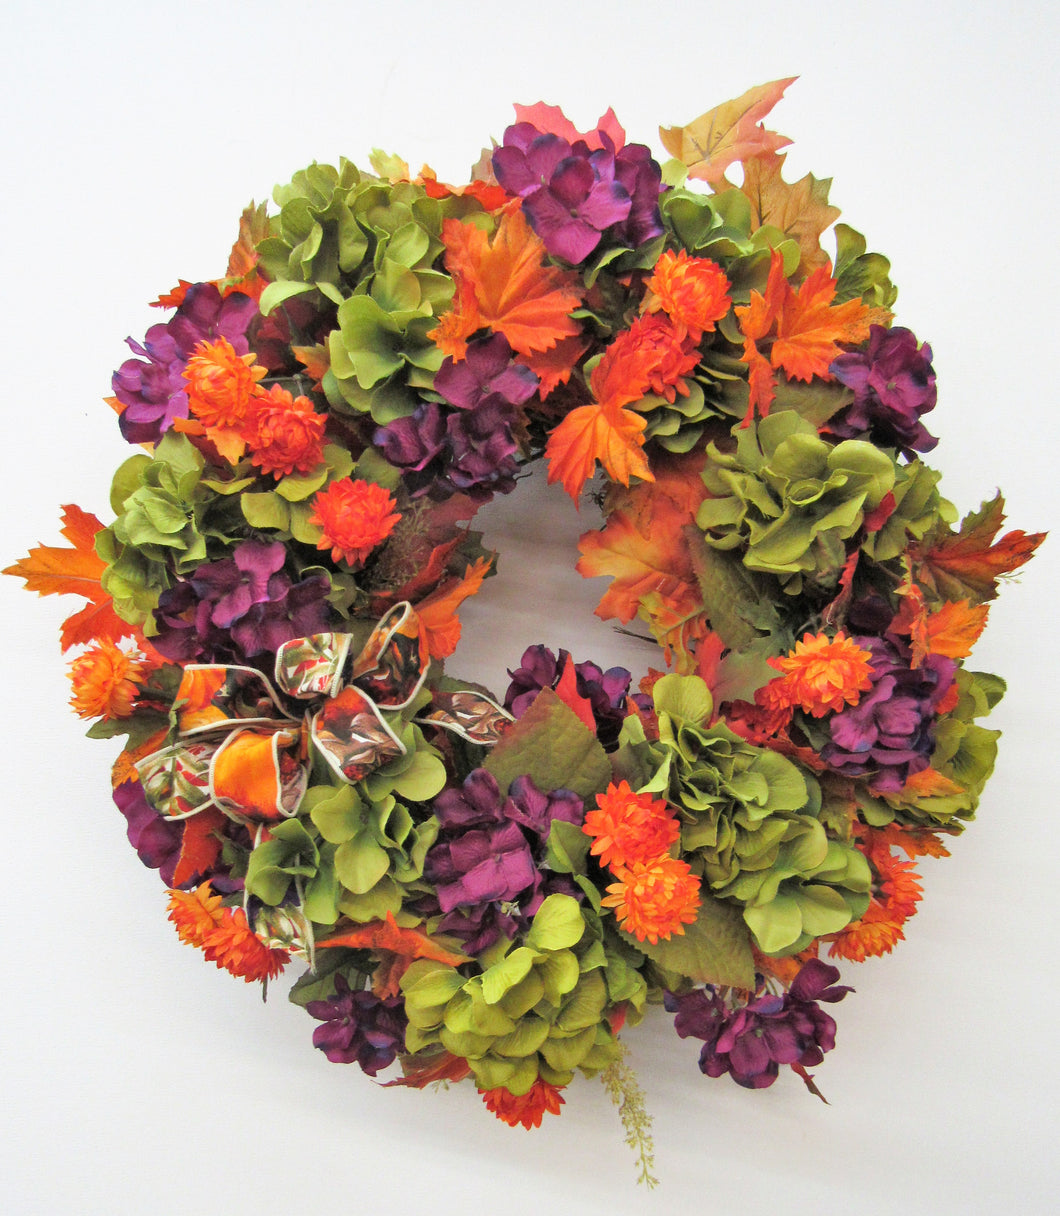 Gallery/Harv29 - April's Garden Wreath